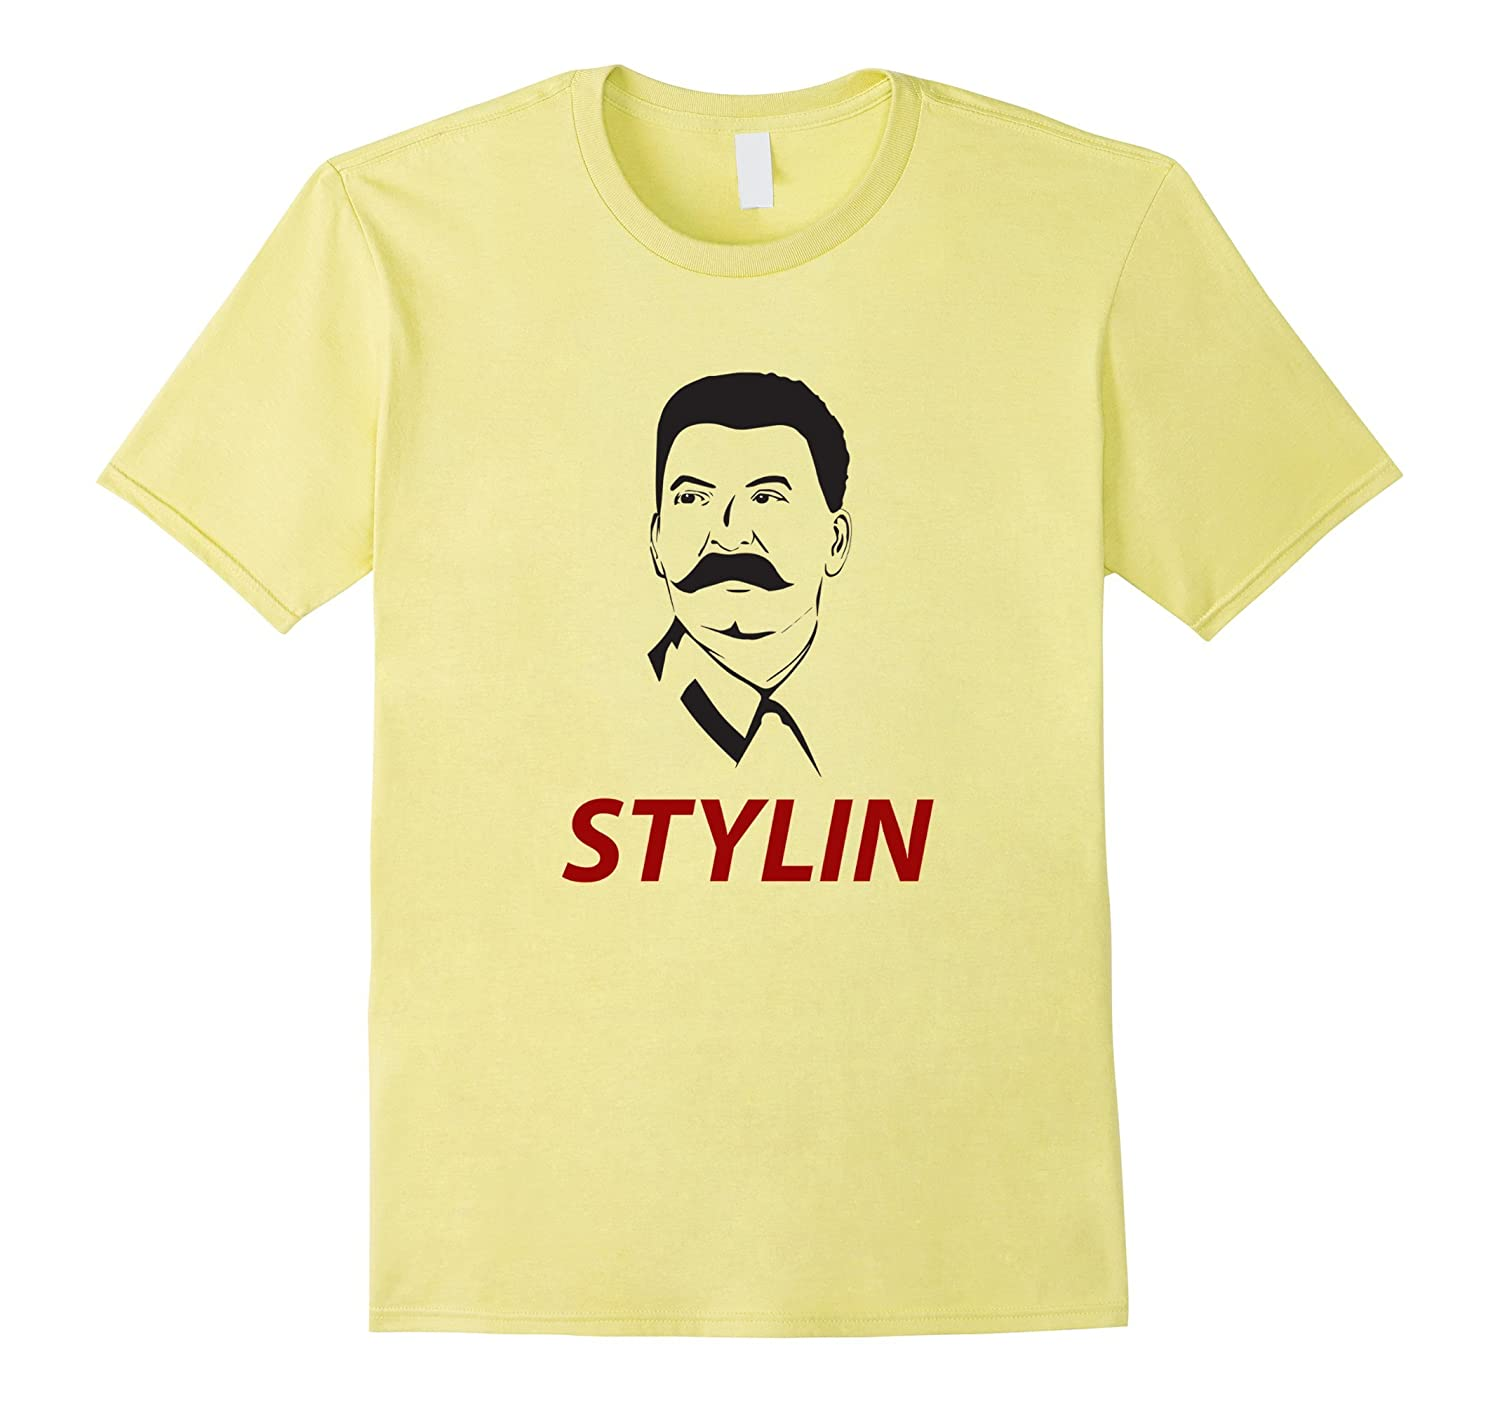 Shop Stylin T-Shirt created by gBOnline. Personalize it with photos & text or purchase as is!